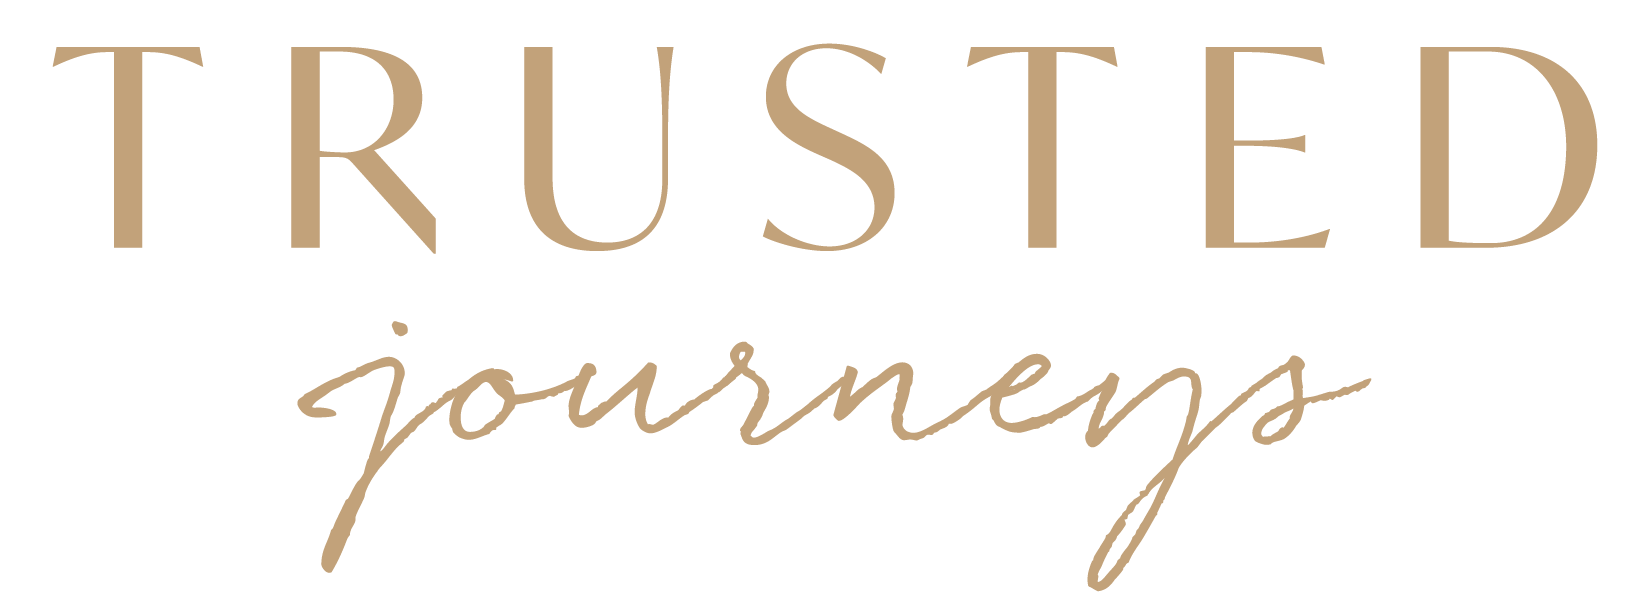 Trusted Journeys